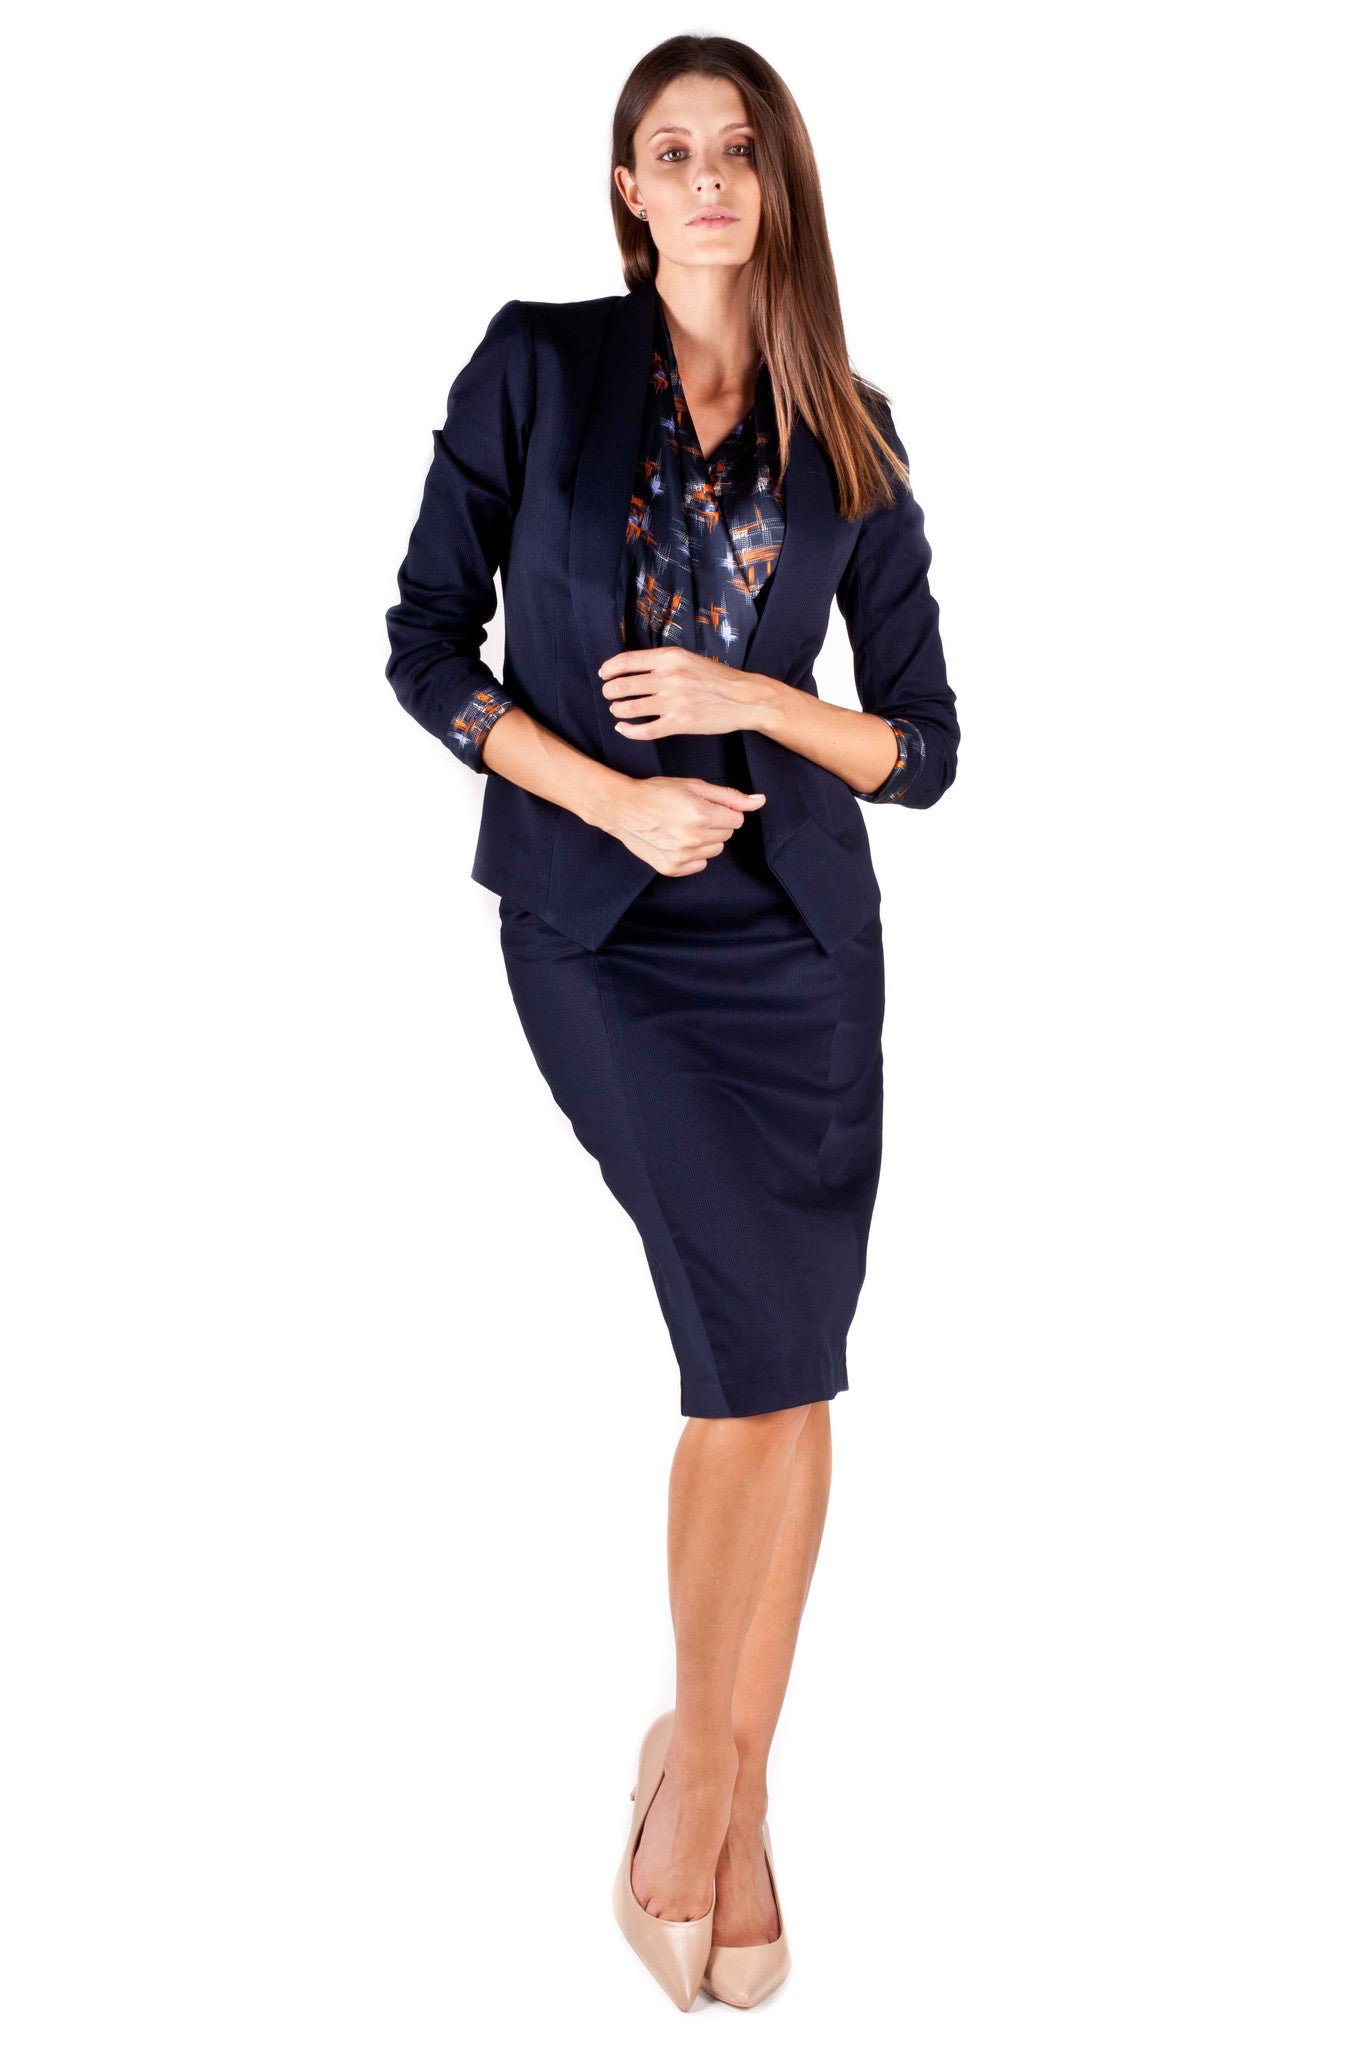 The Game Changer Skirt Suit